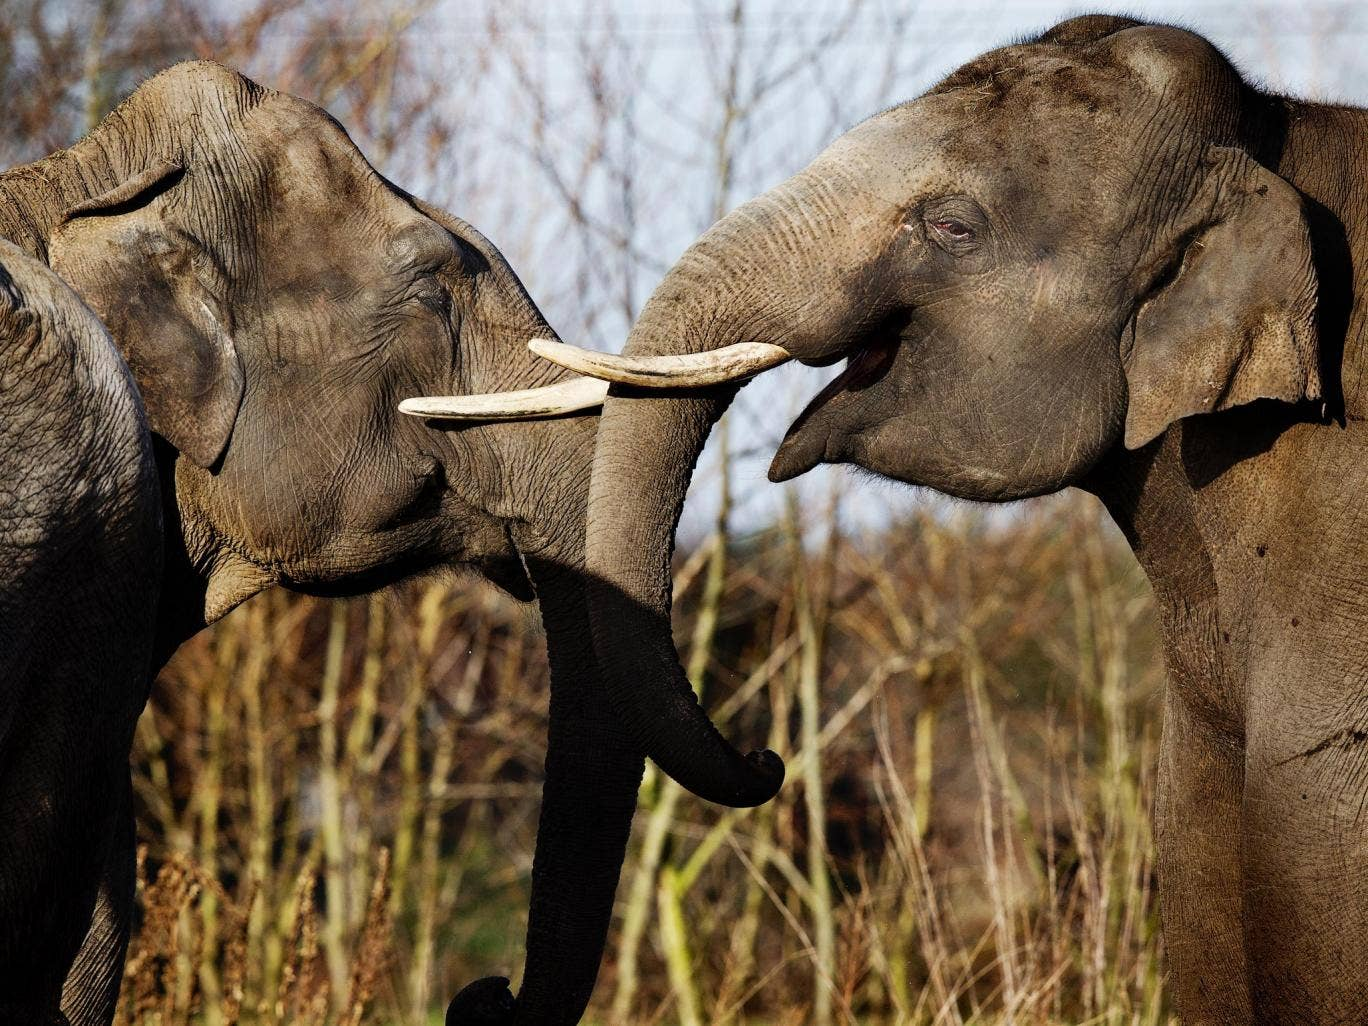 The Independent's 2013 Elephant Appeal raised more than £500,000 to combat the poaching crisis